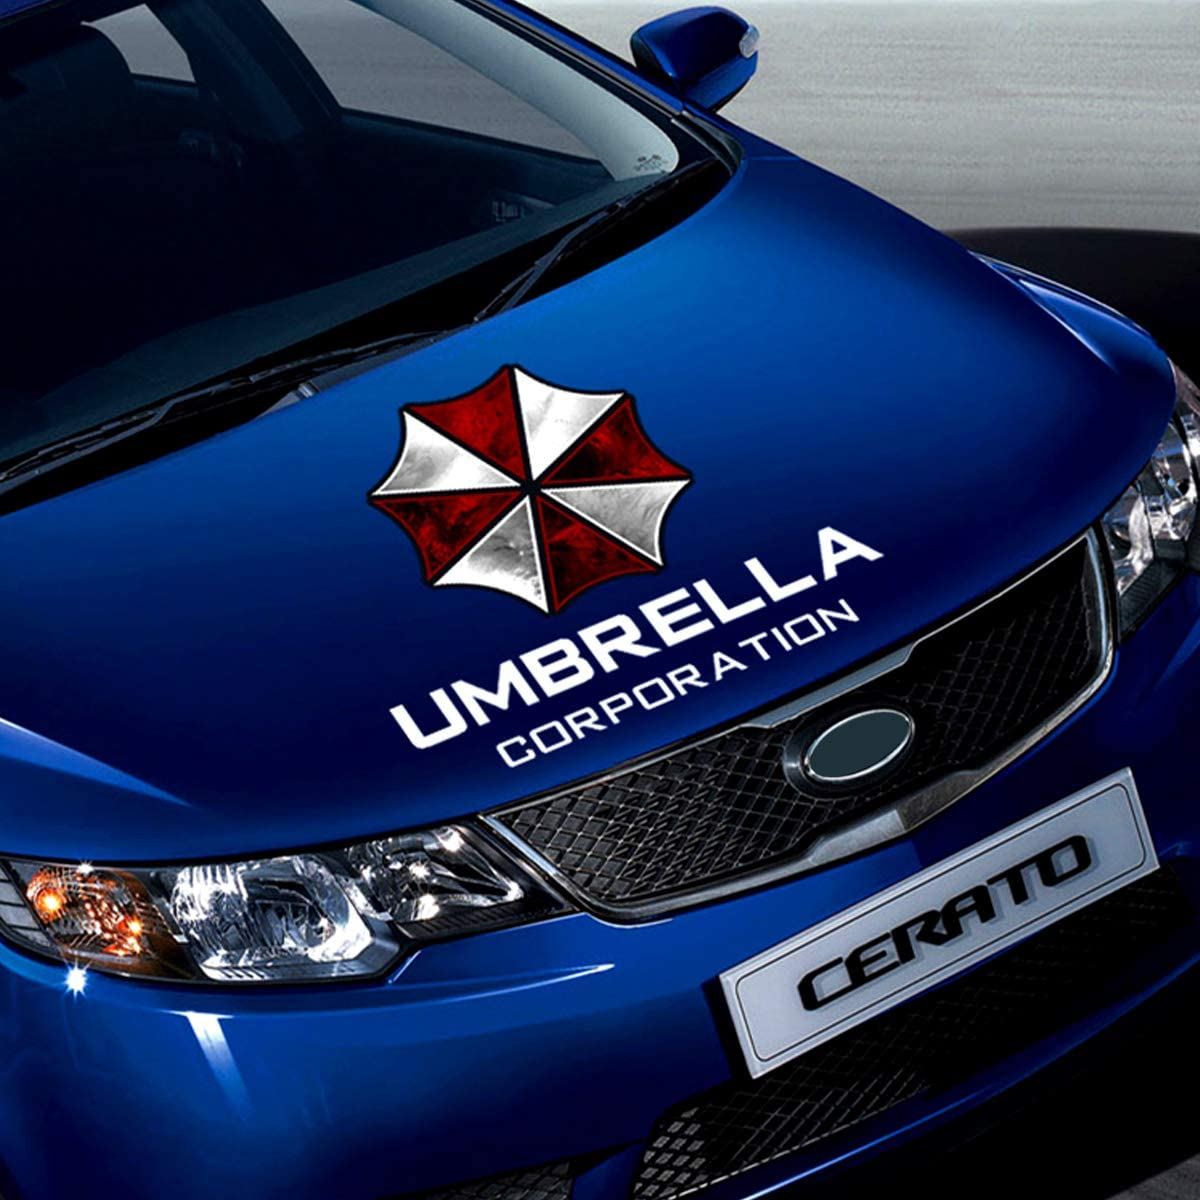 Umbrella Corporation Decal Resident Evil Car Front Cover Body Sticker for Vehicles